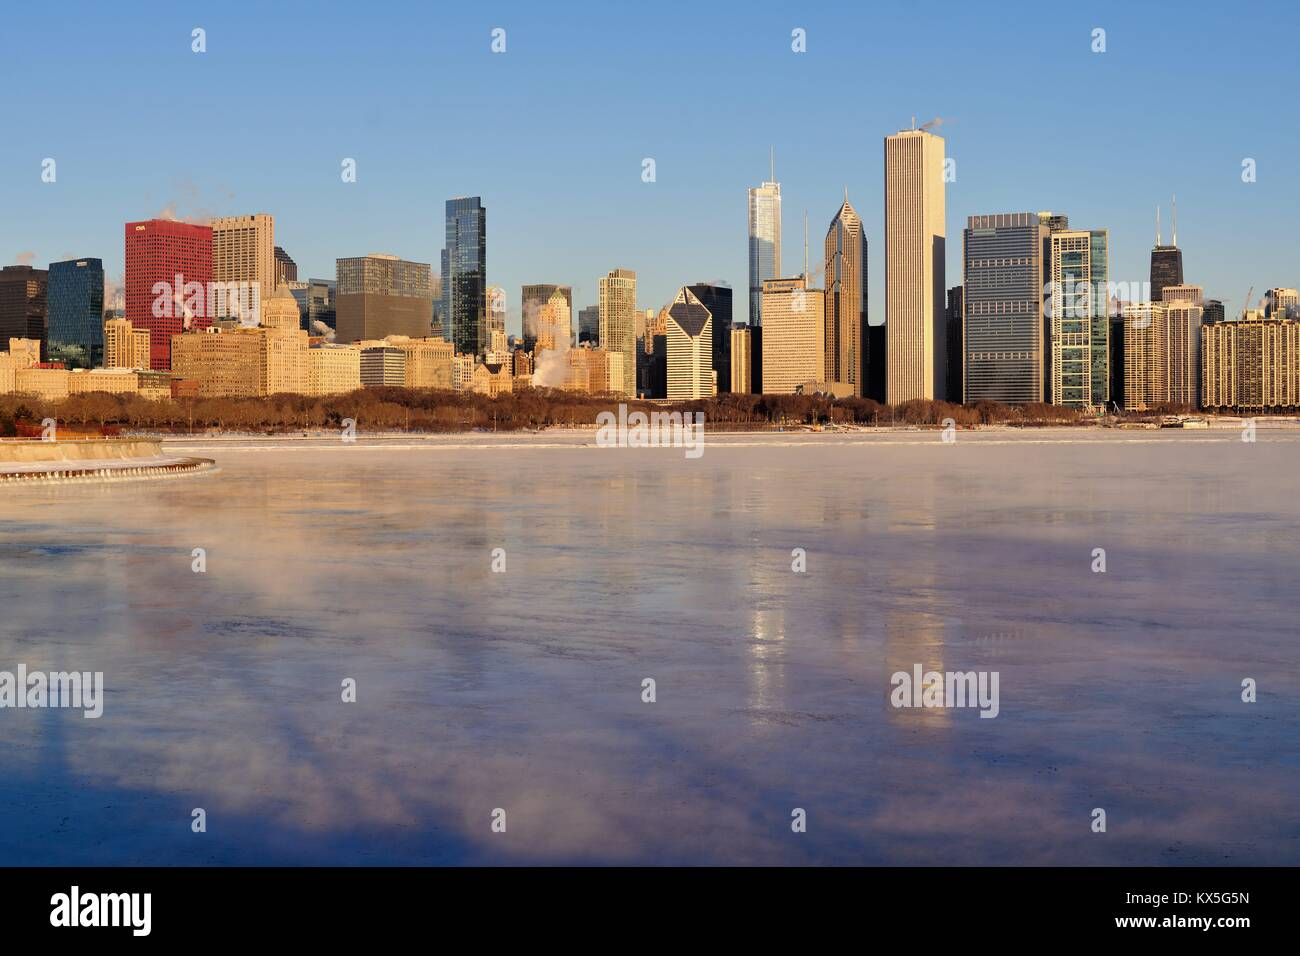 Winds and bitter cold created vapor above the ice in Lake Michigan and exhausting from buildings. Chicago, Illinois, - Stock Image